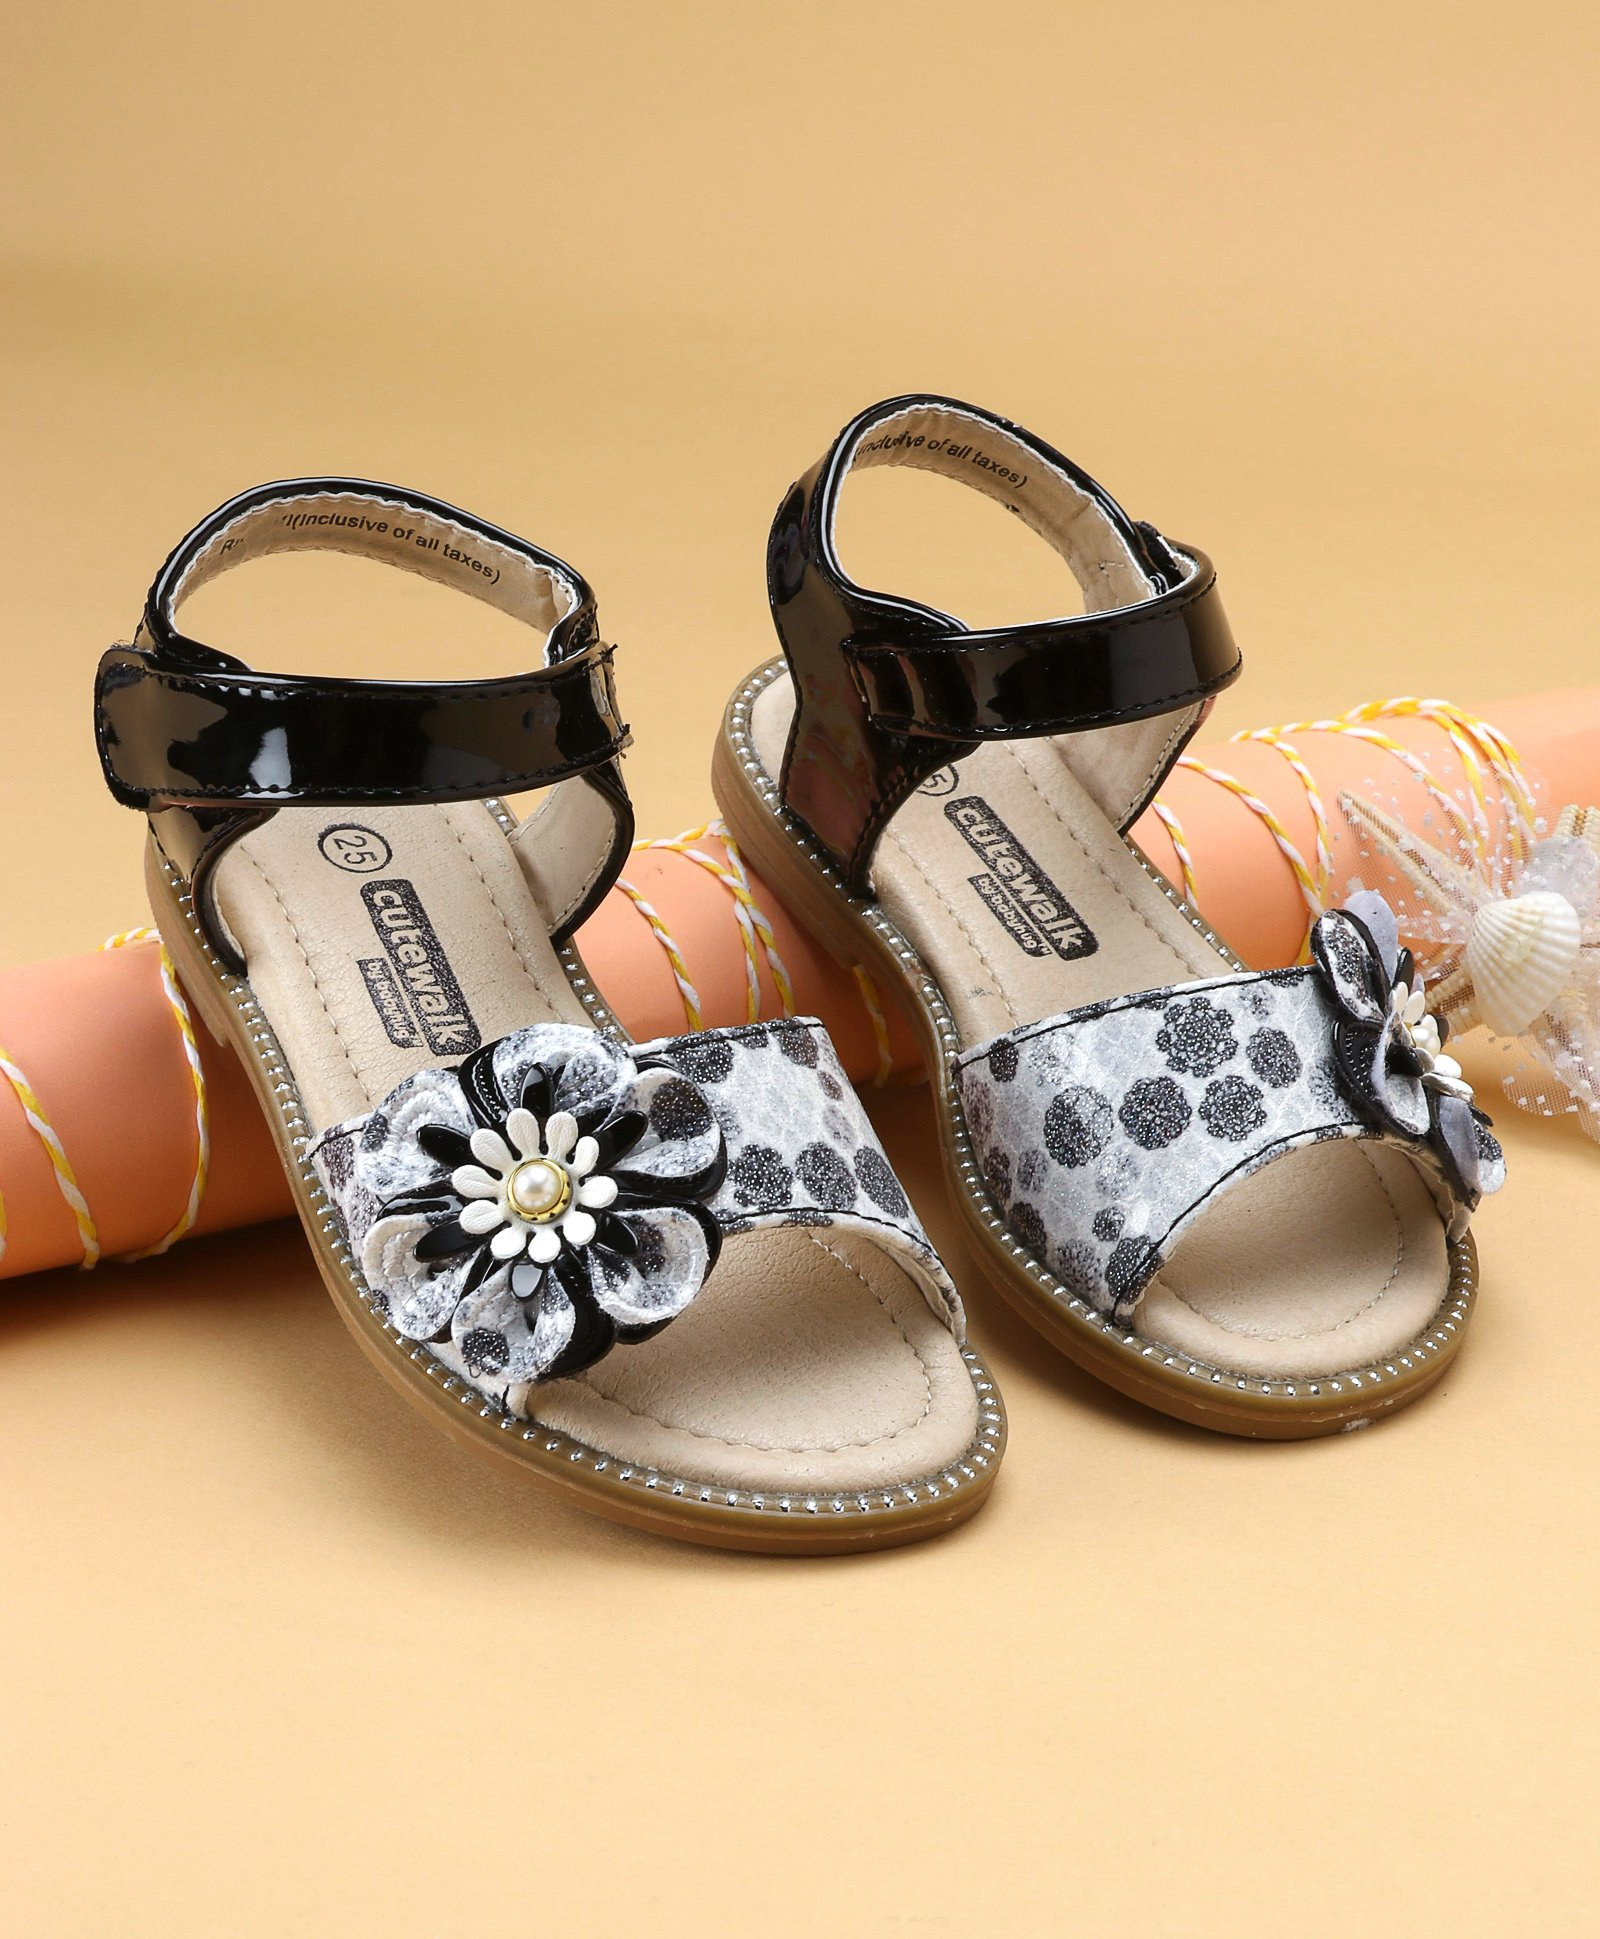 7f52ea3fd91 Buy Cute Walk by Babyhug Party Wear Sandals With Floral Motif Black ...